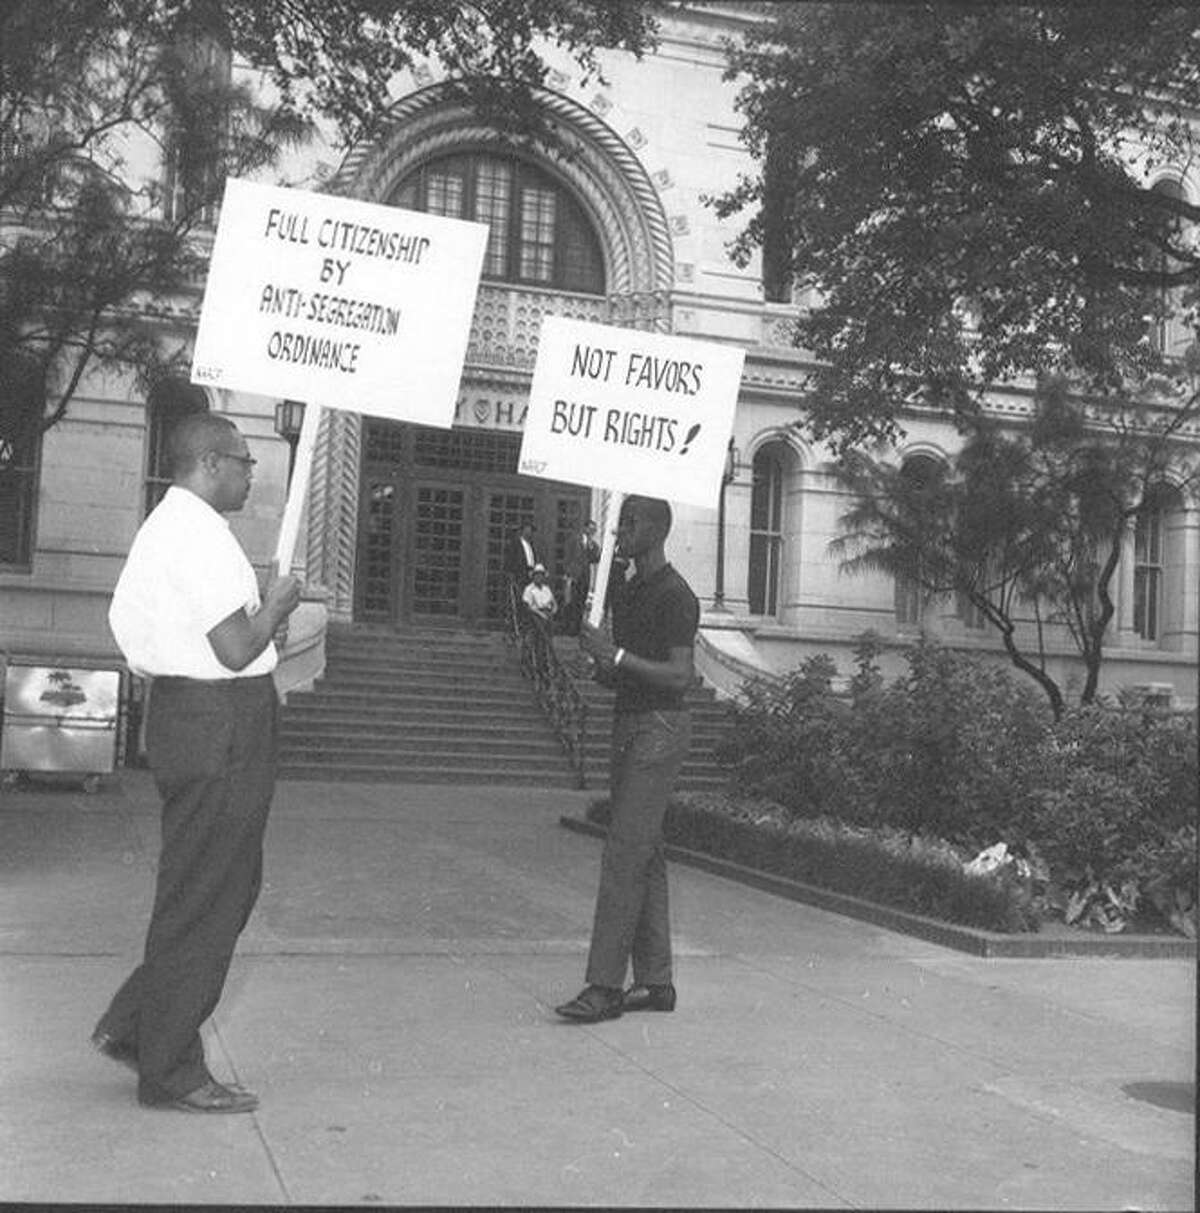 Harry V. Burns (left) and another man protest segregation at City Hall on June 12, 1963.